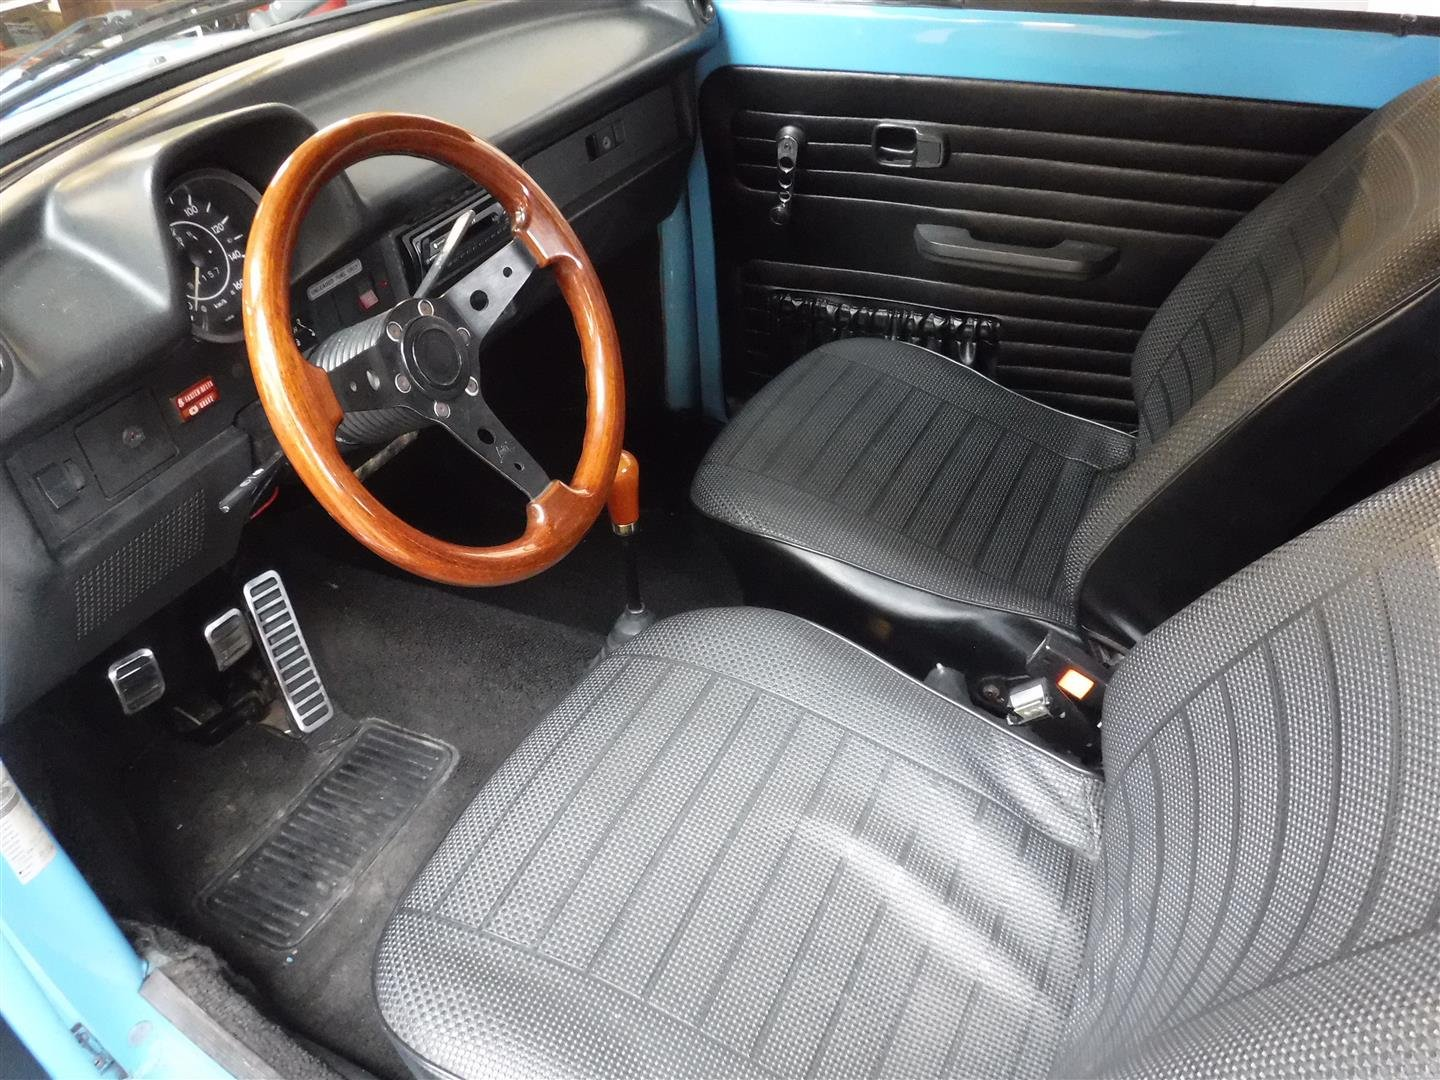 1976 Volkswagen 1303 S Cabrio For Sale (picture 4 of 6)